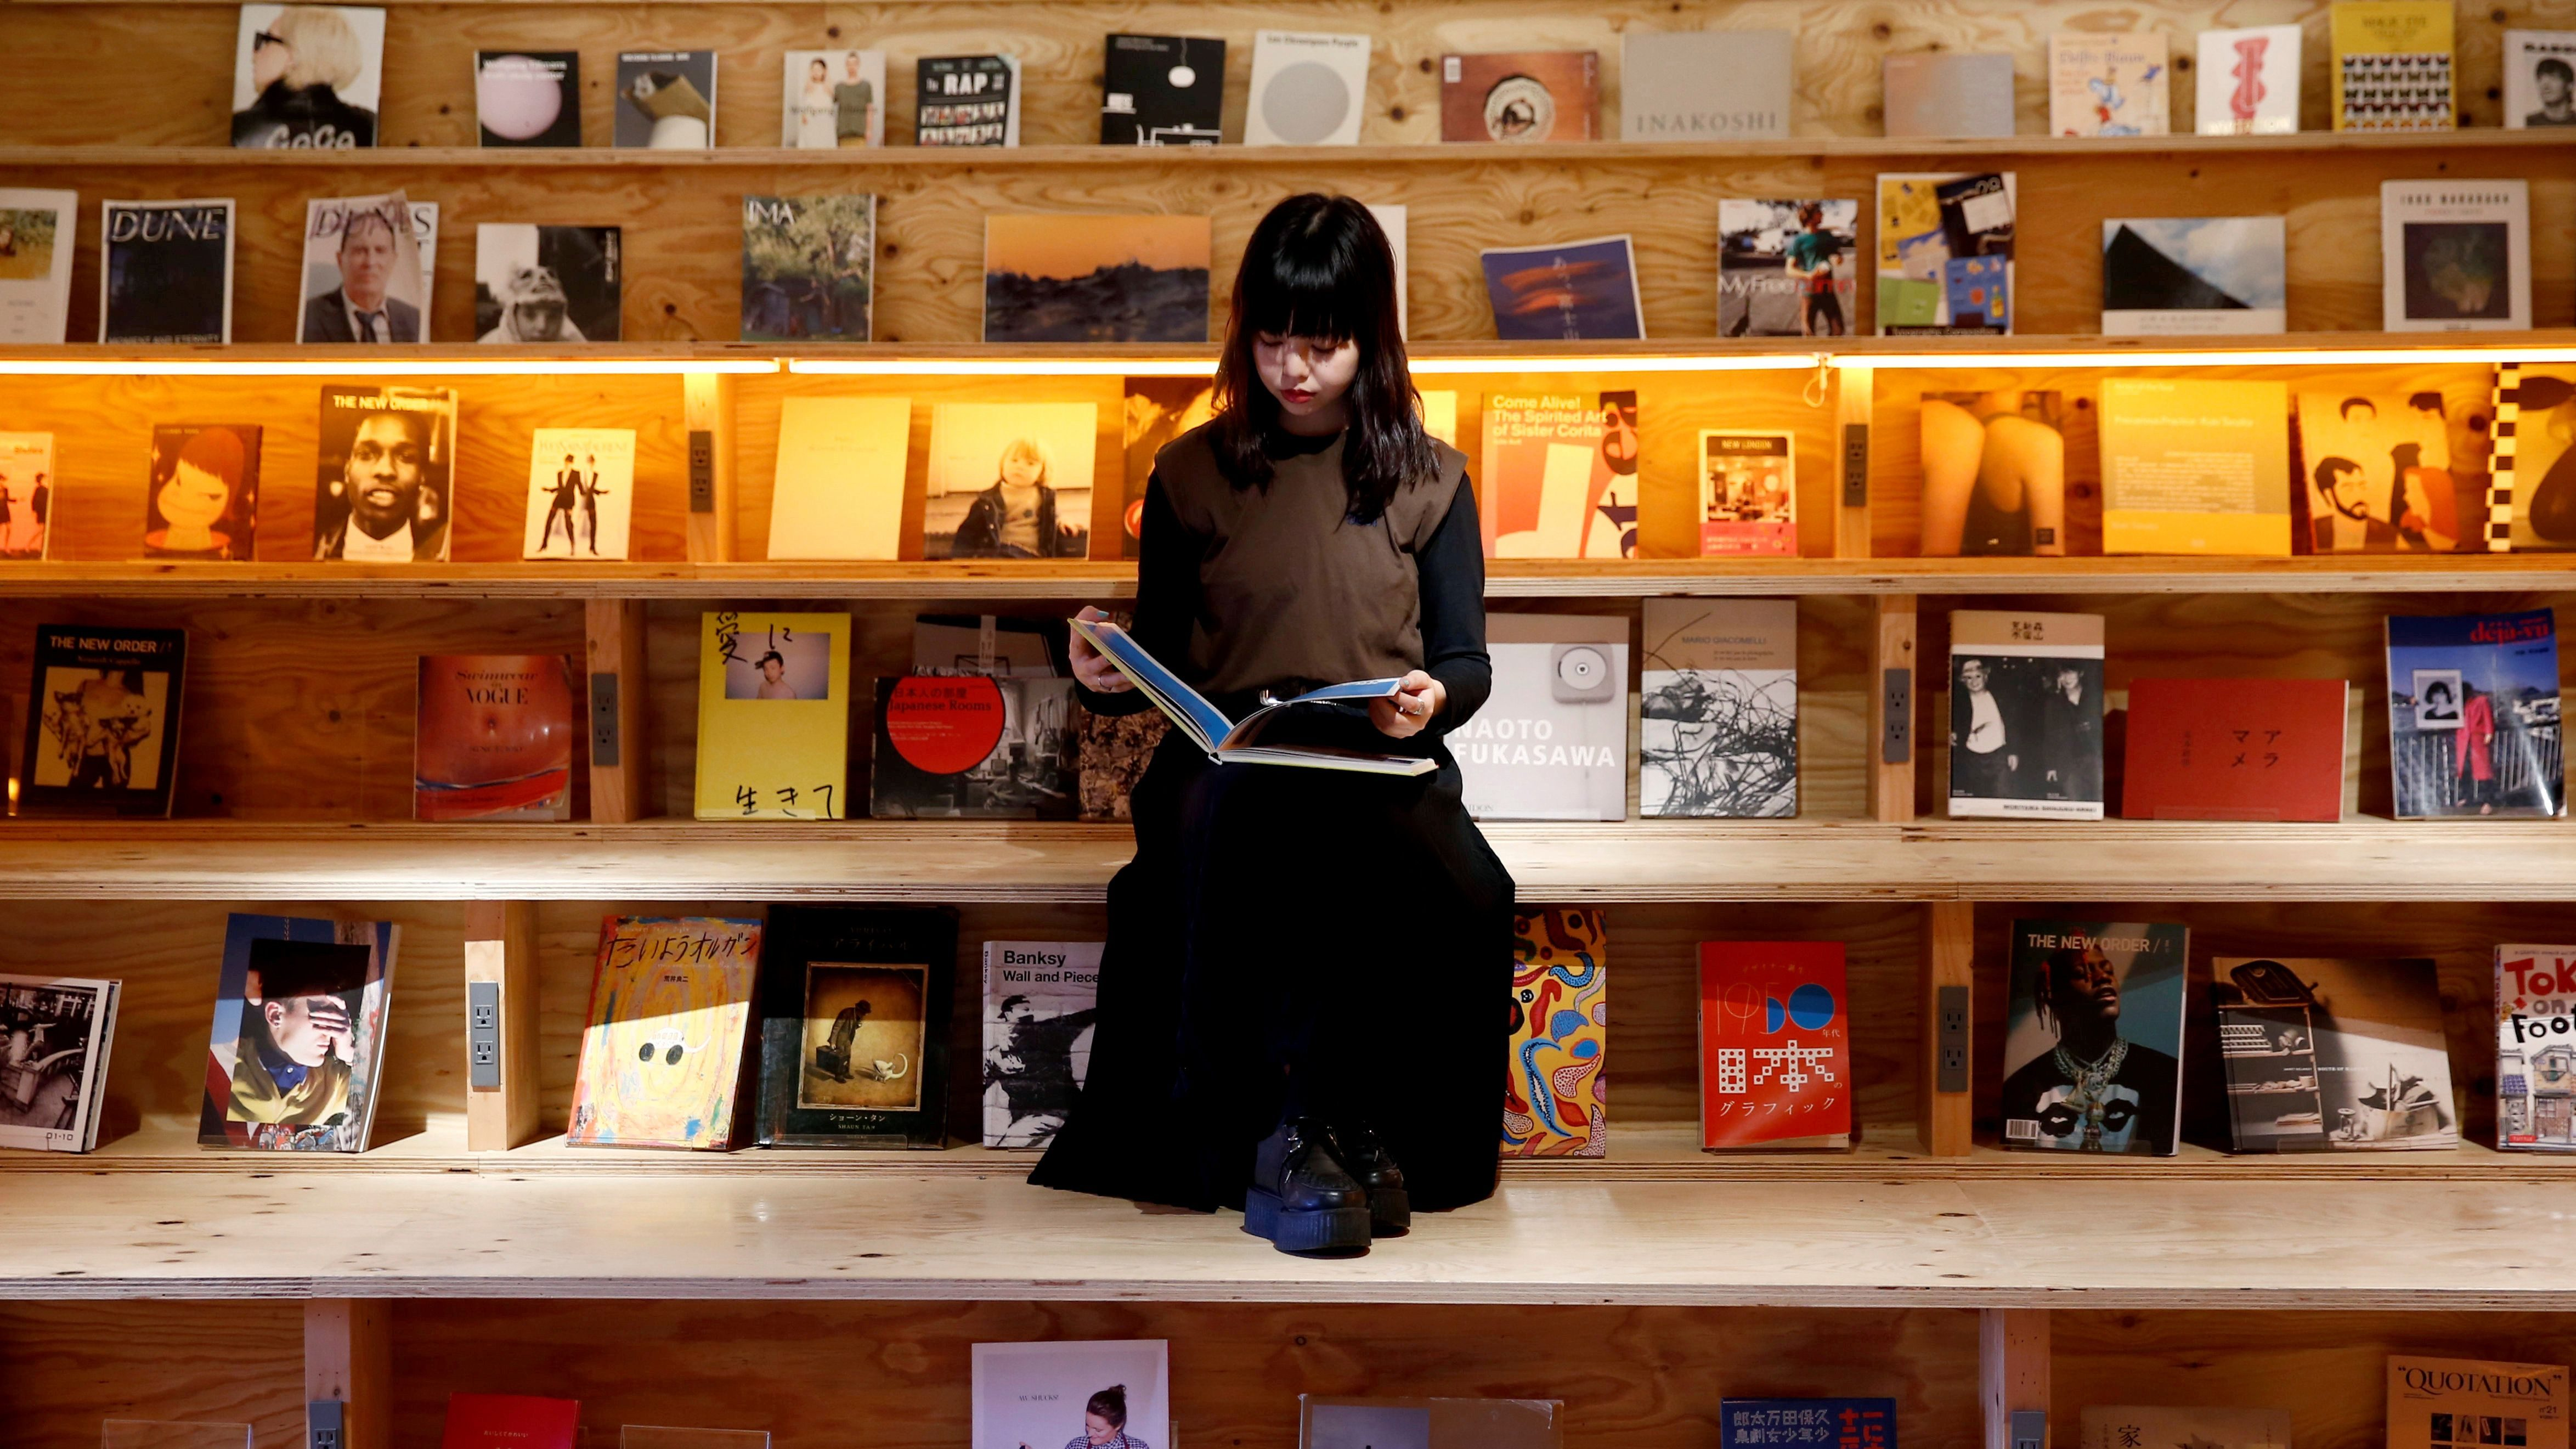 Book sales are up this year over last year, and physical books are thriving